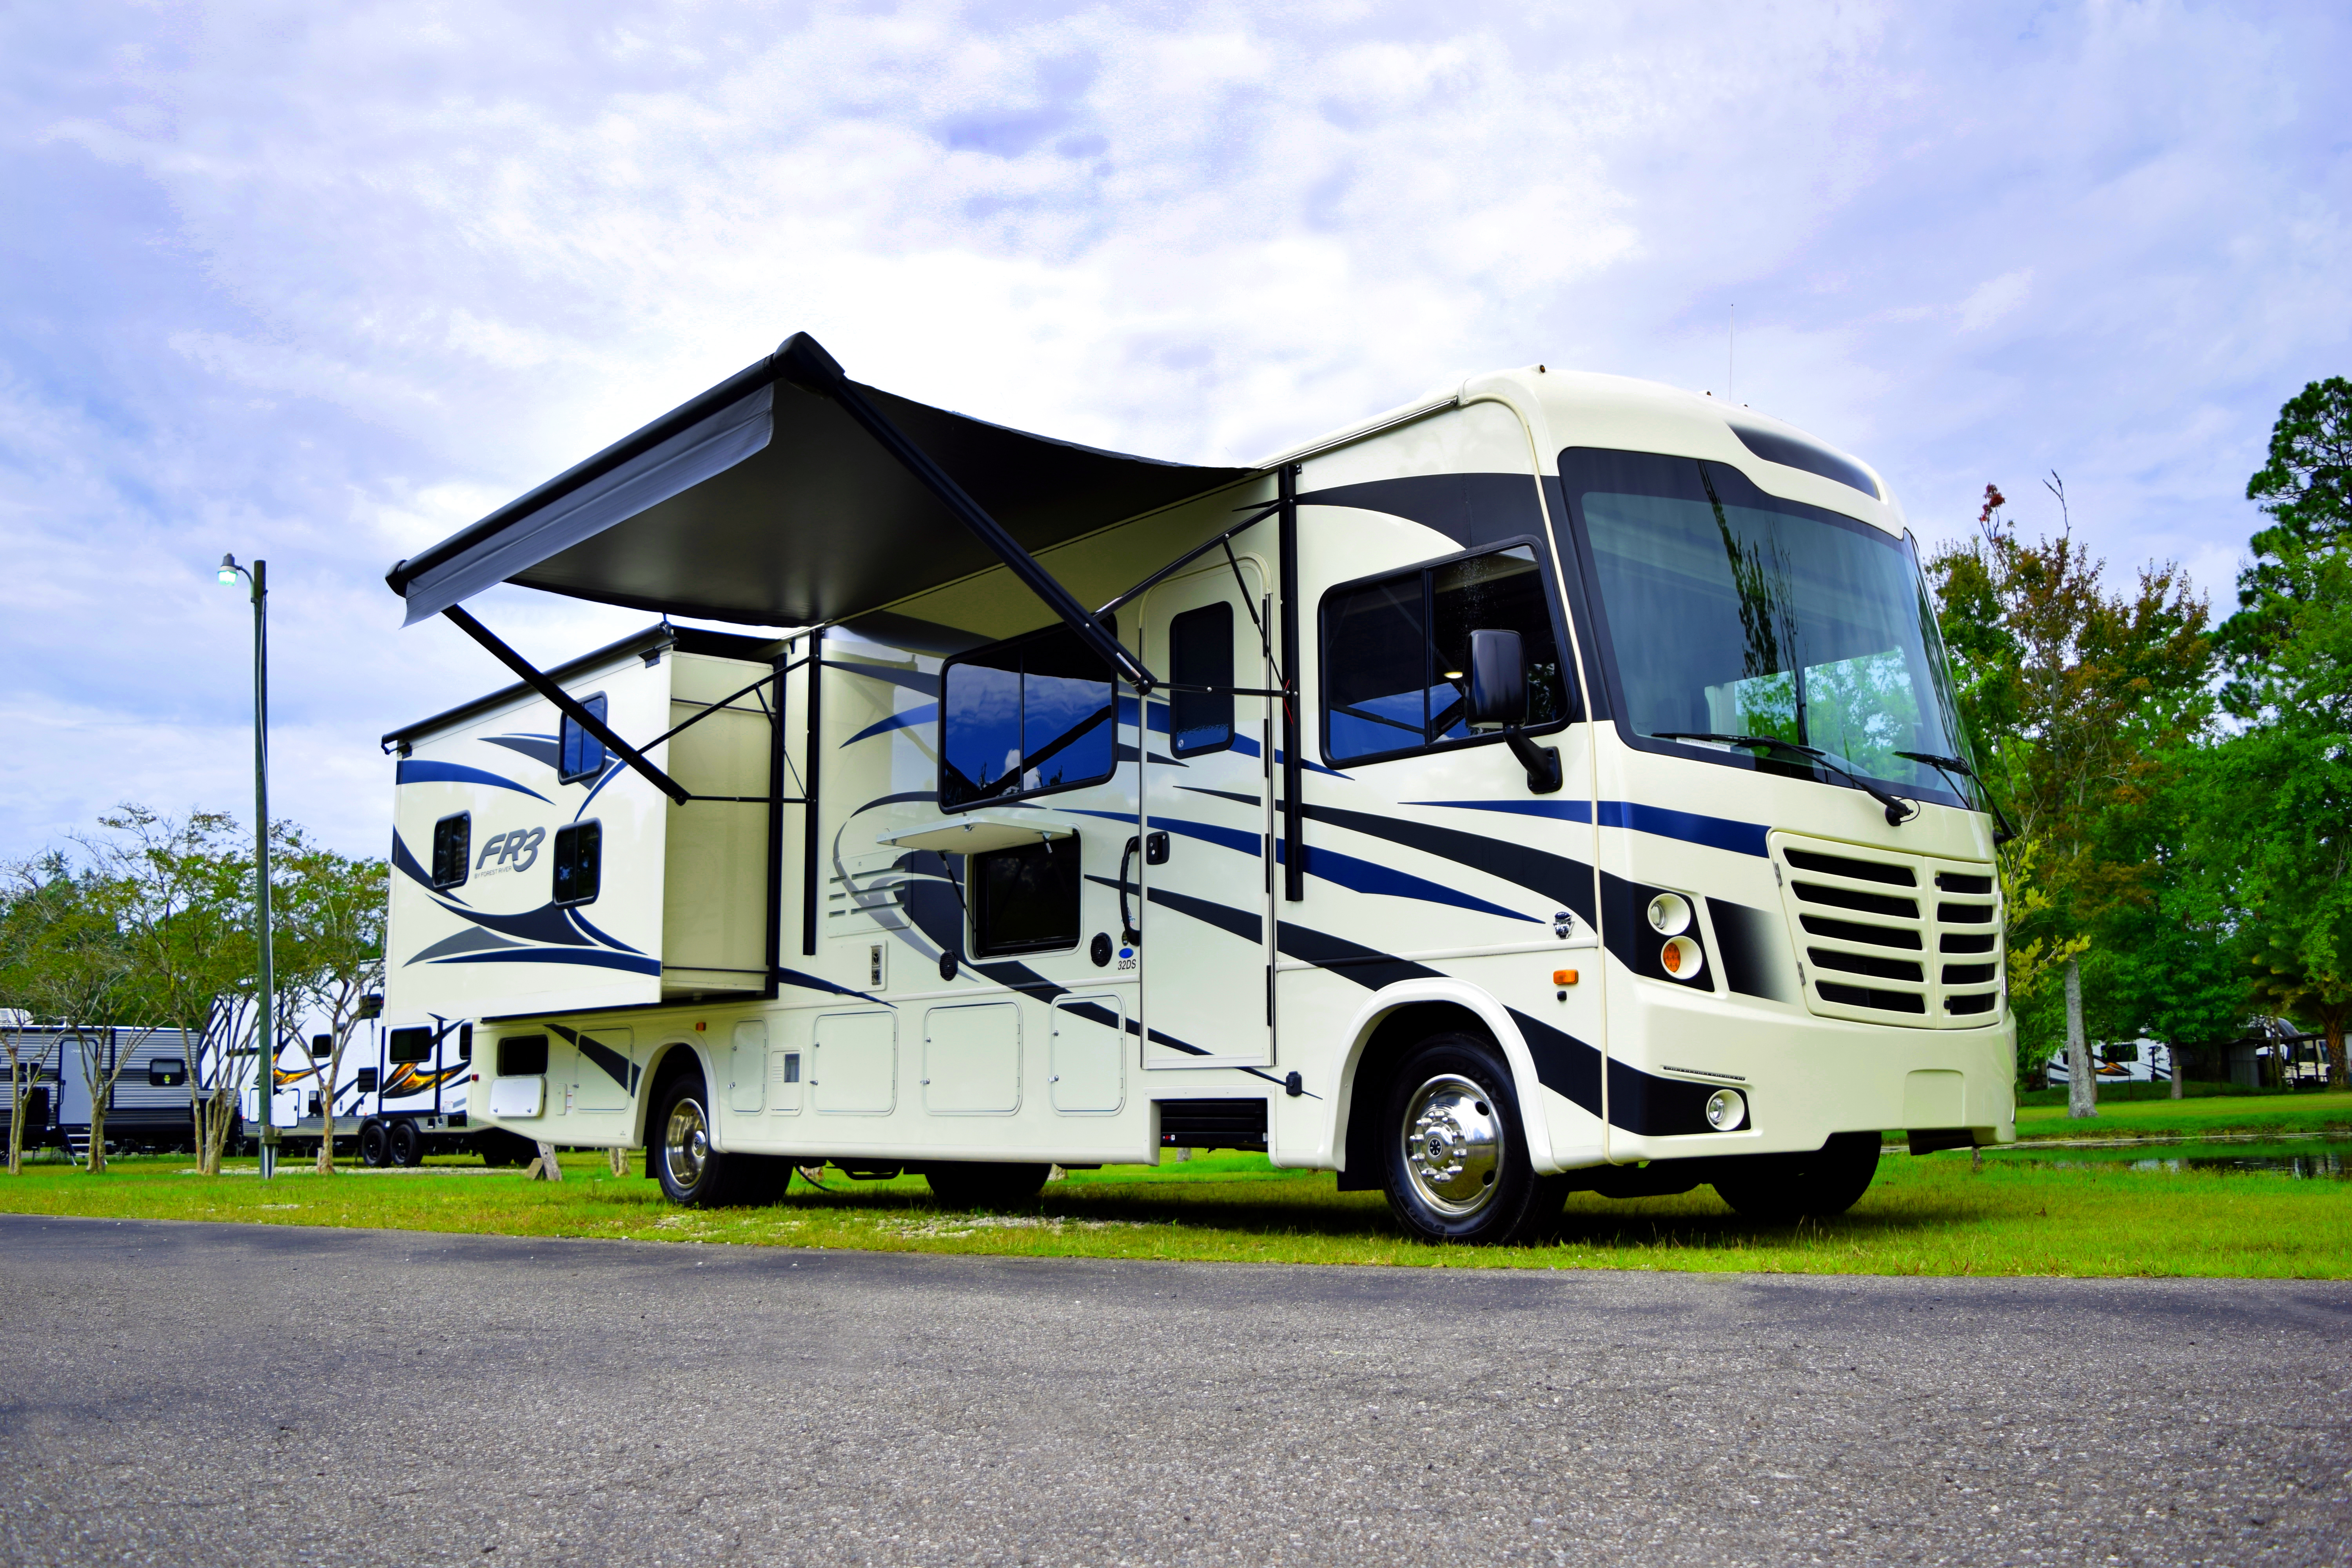 How to Set up Your RV at the Campsite for the First Time